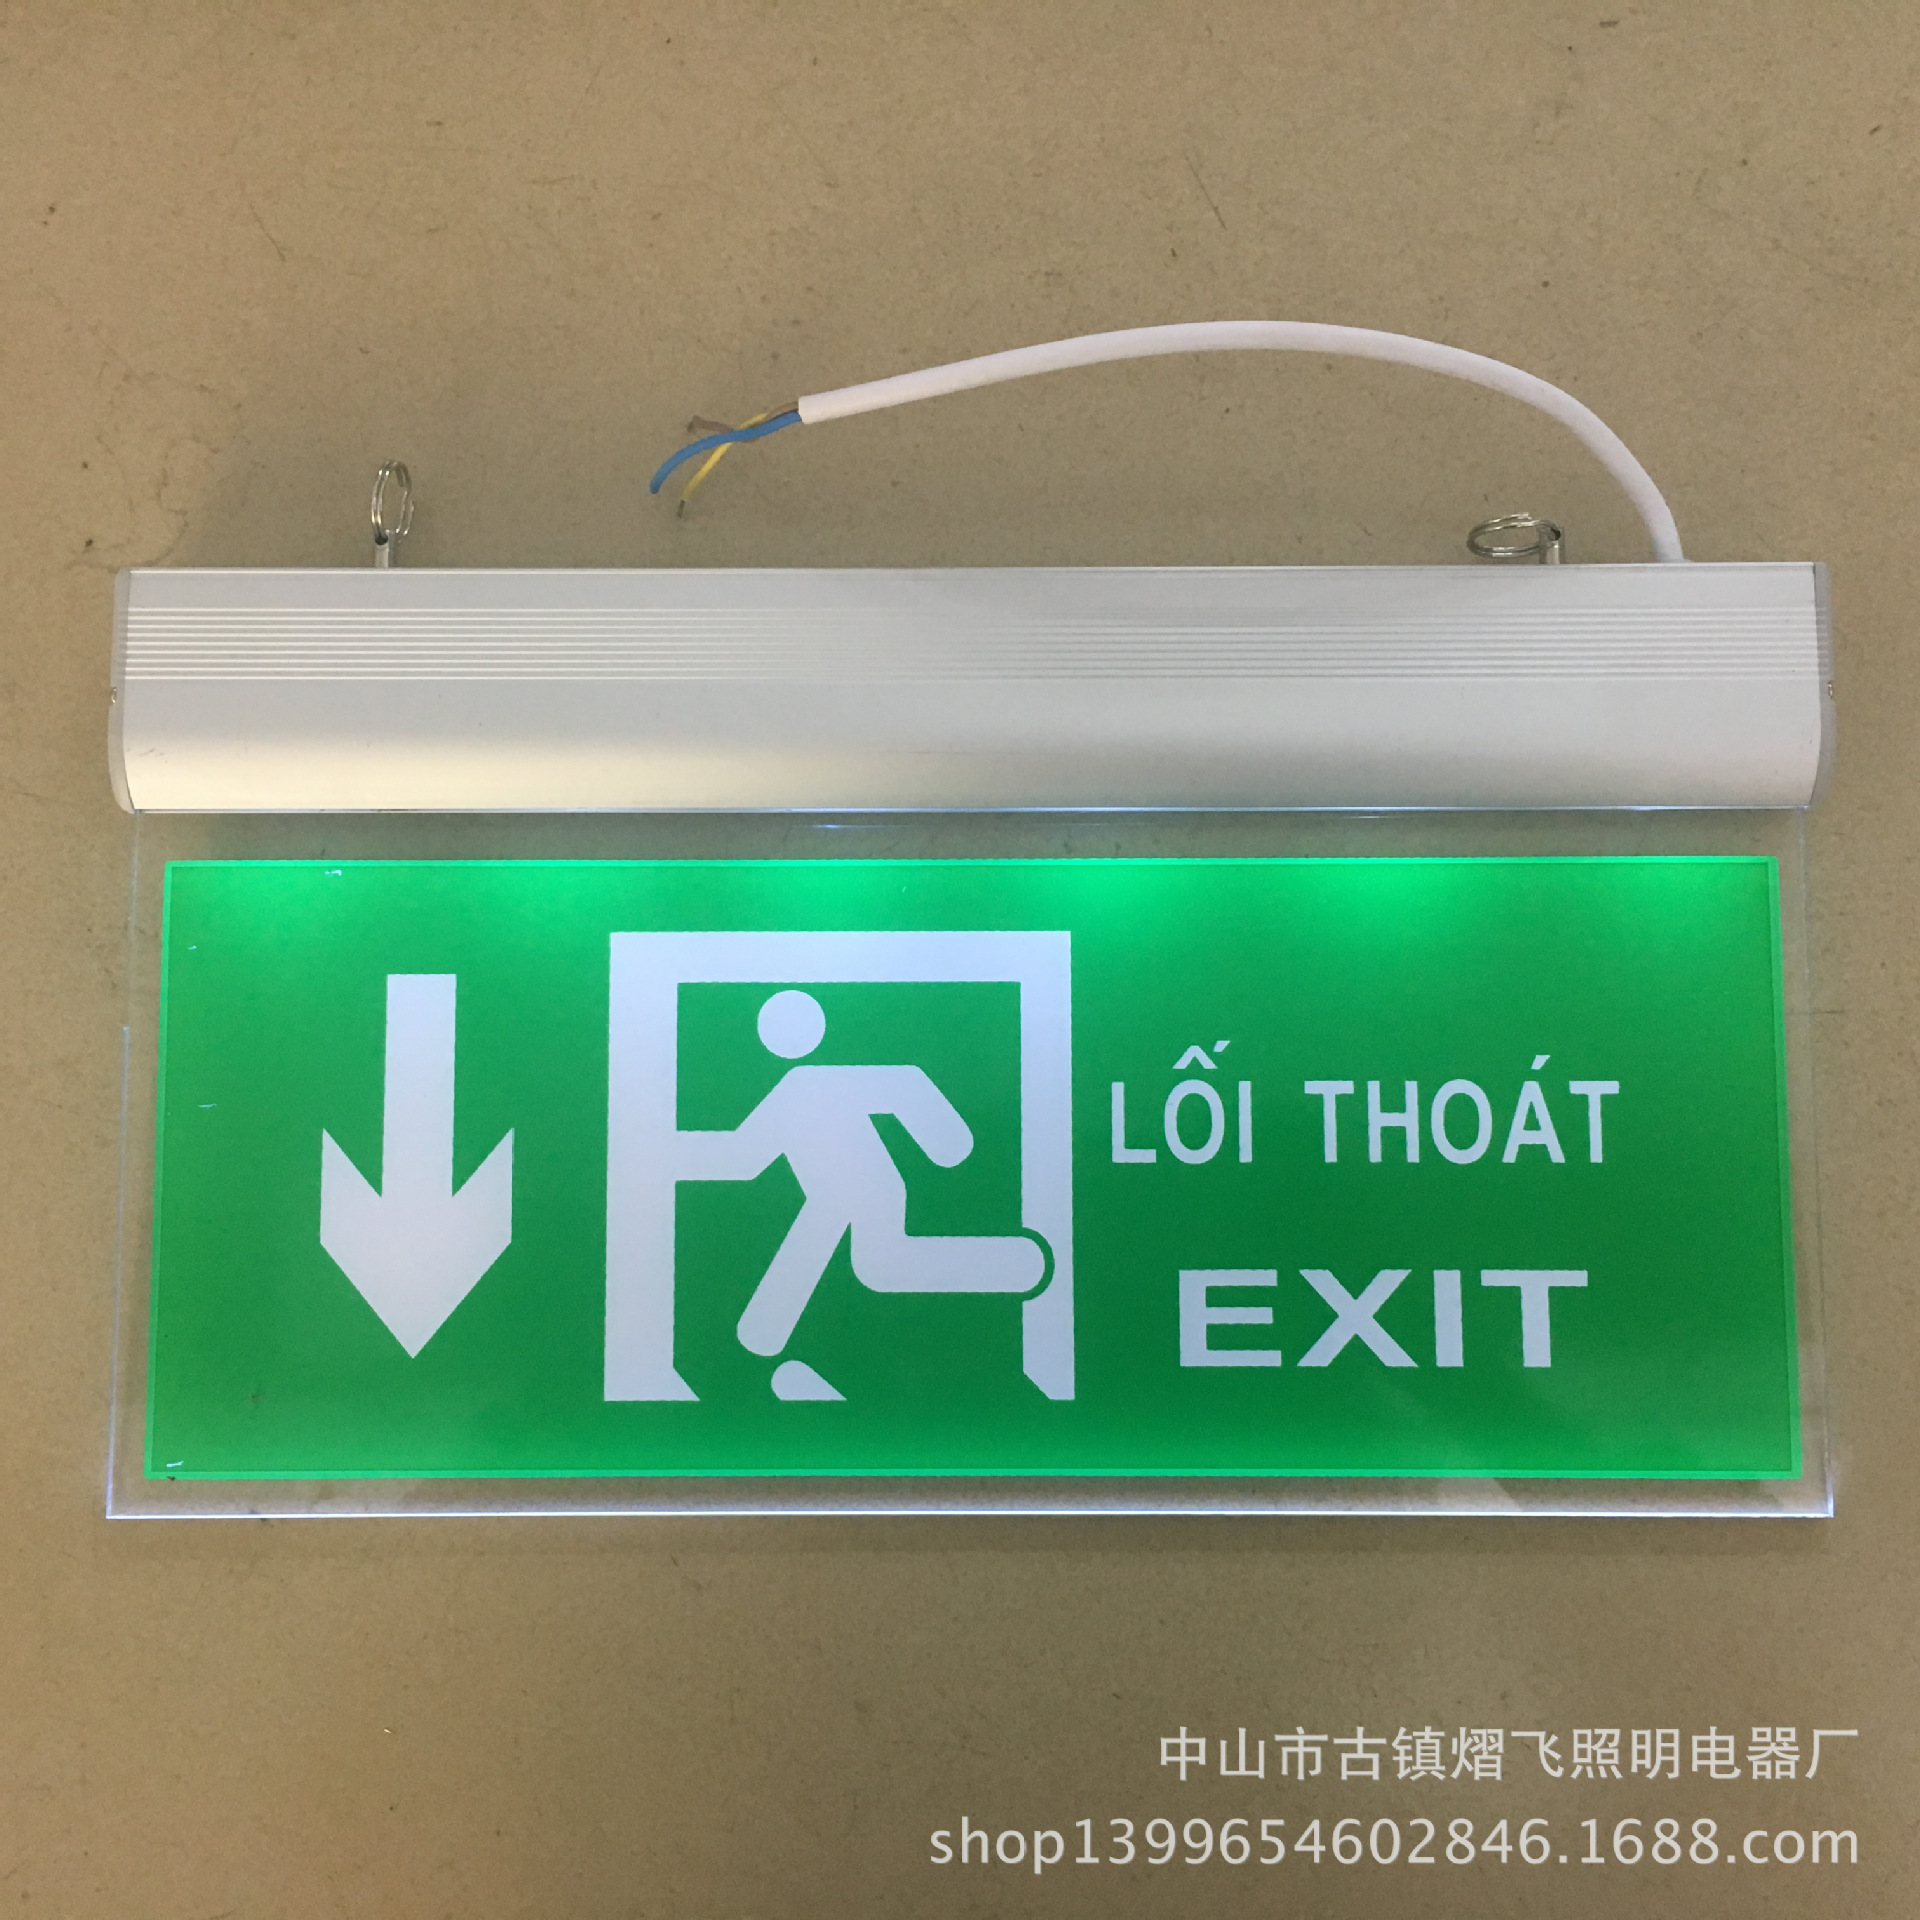 customize pattern Buyer provides text fire emergency light Safety exit Indicator light Acrylic Exit Emergency LED indicator exit wound